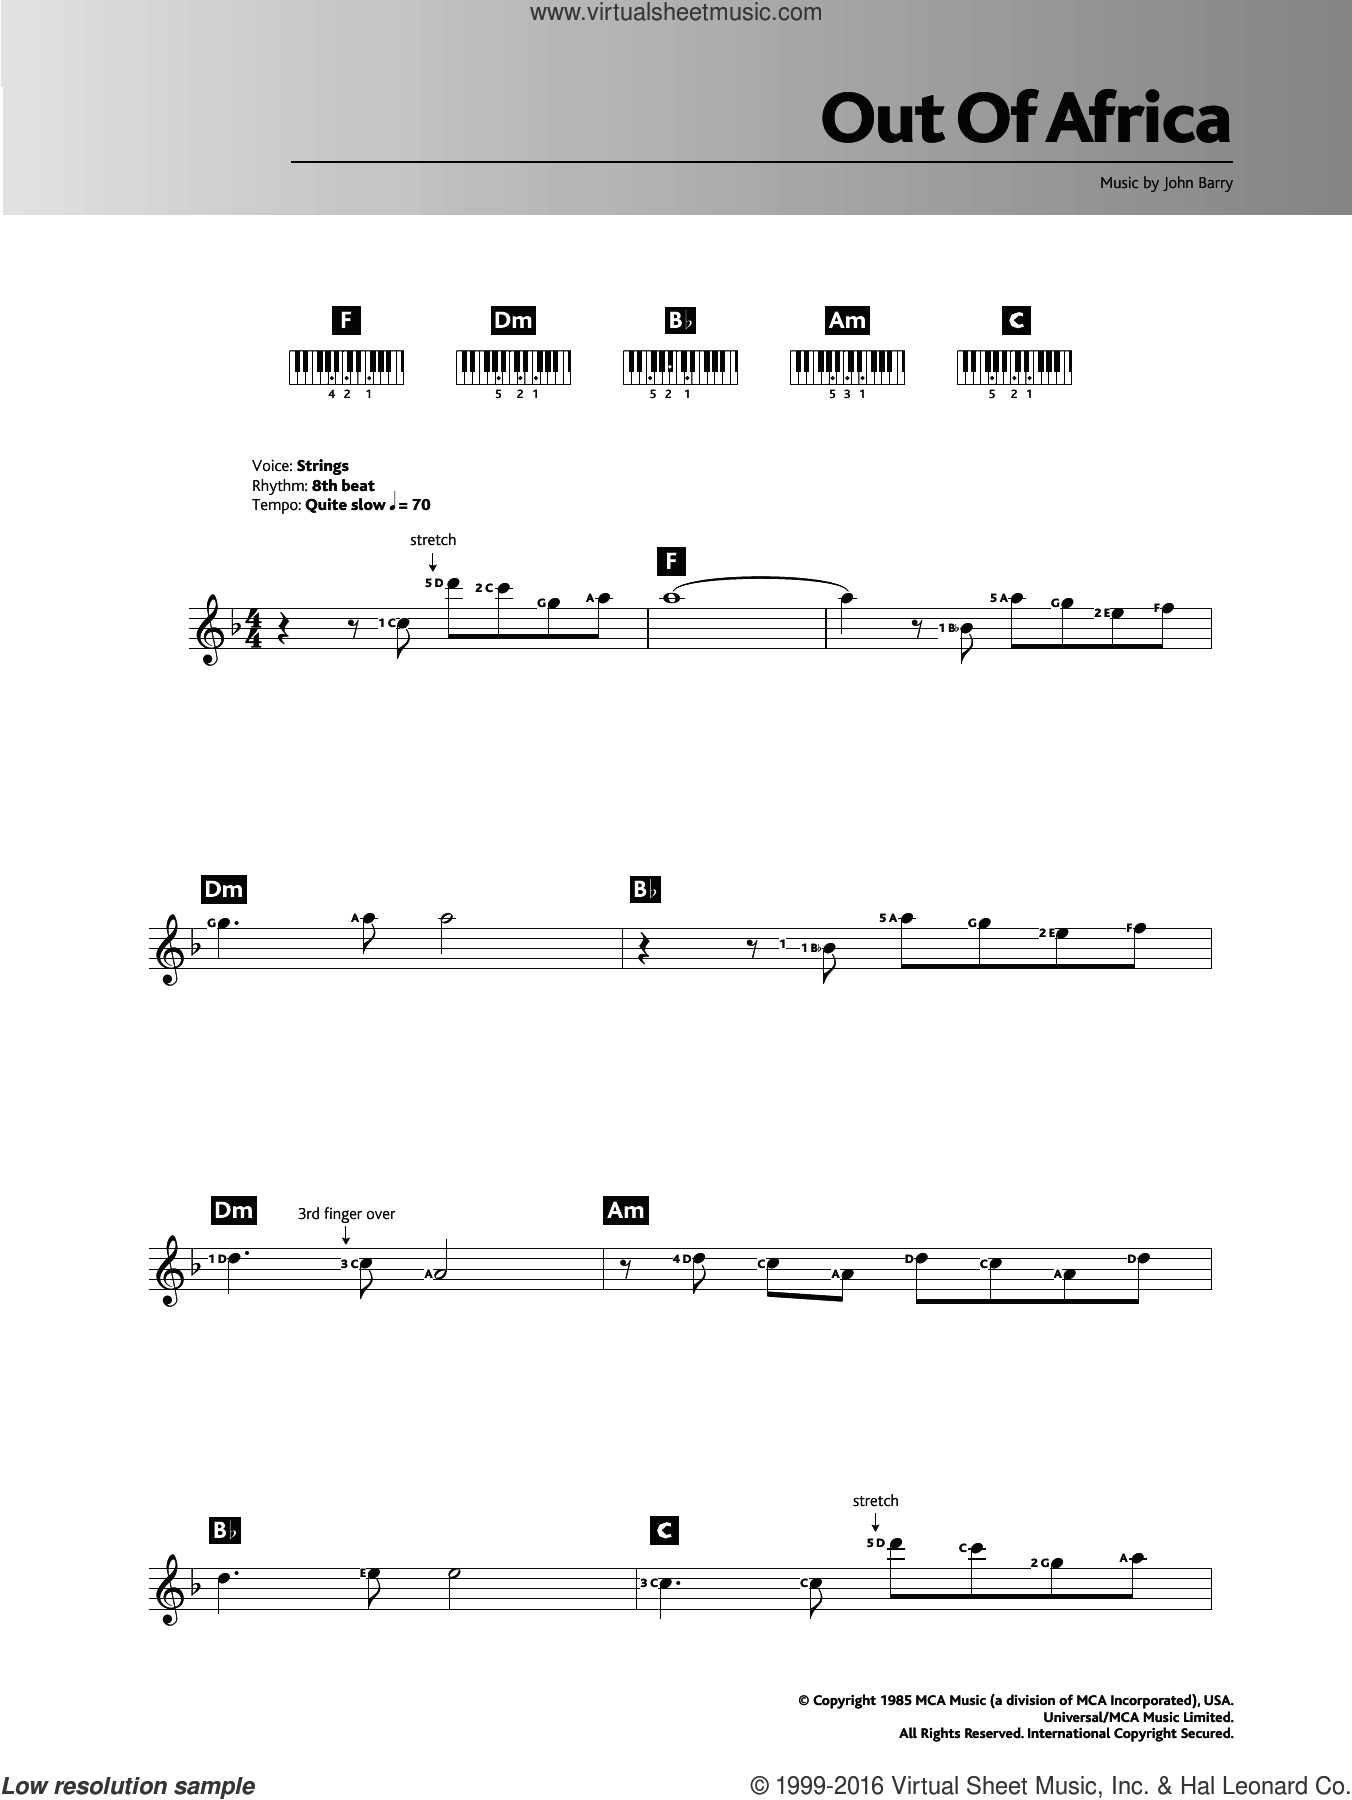 I Had A Farm In Africa (Main Title from Out Of Africa) sheet music for piano solo (chords, lyrics, melody) by John Barry. Score Image Preview.